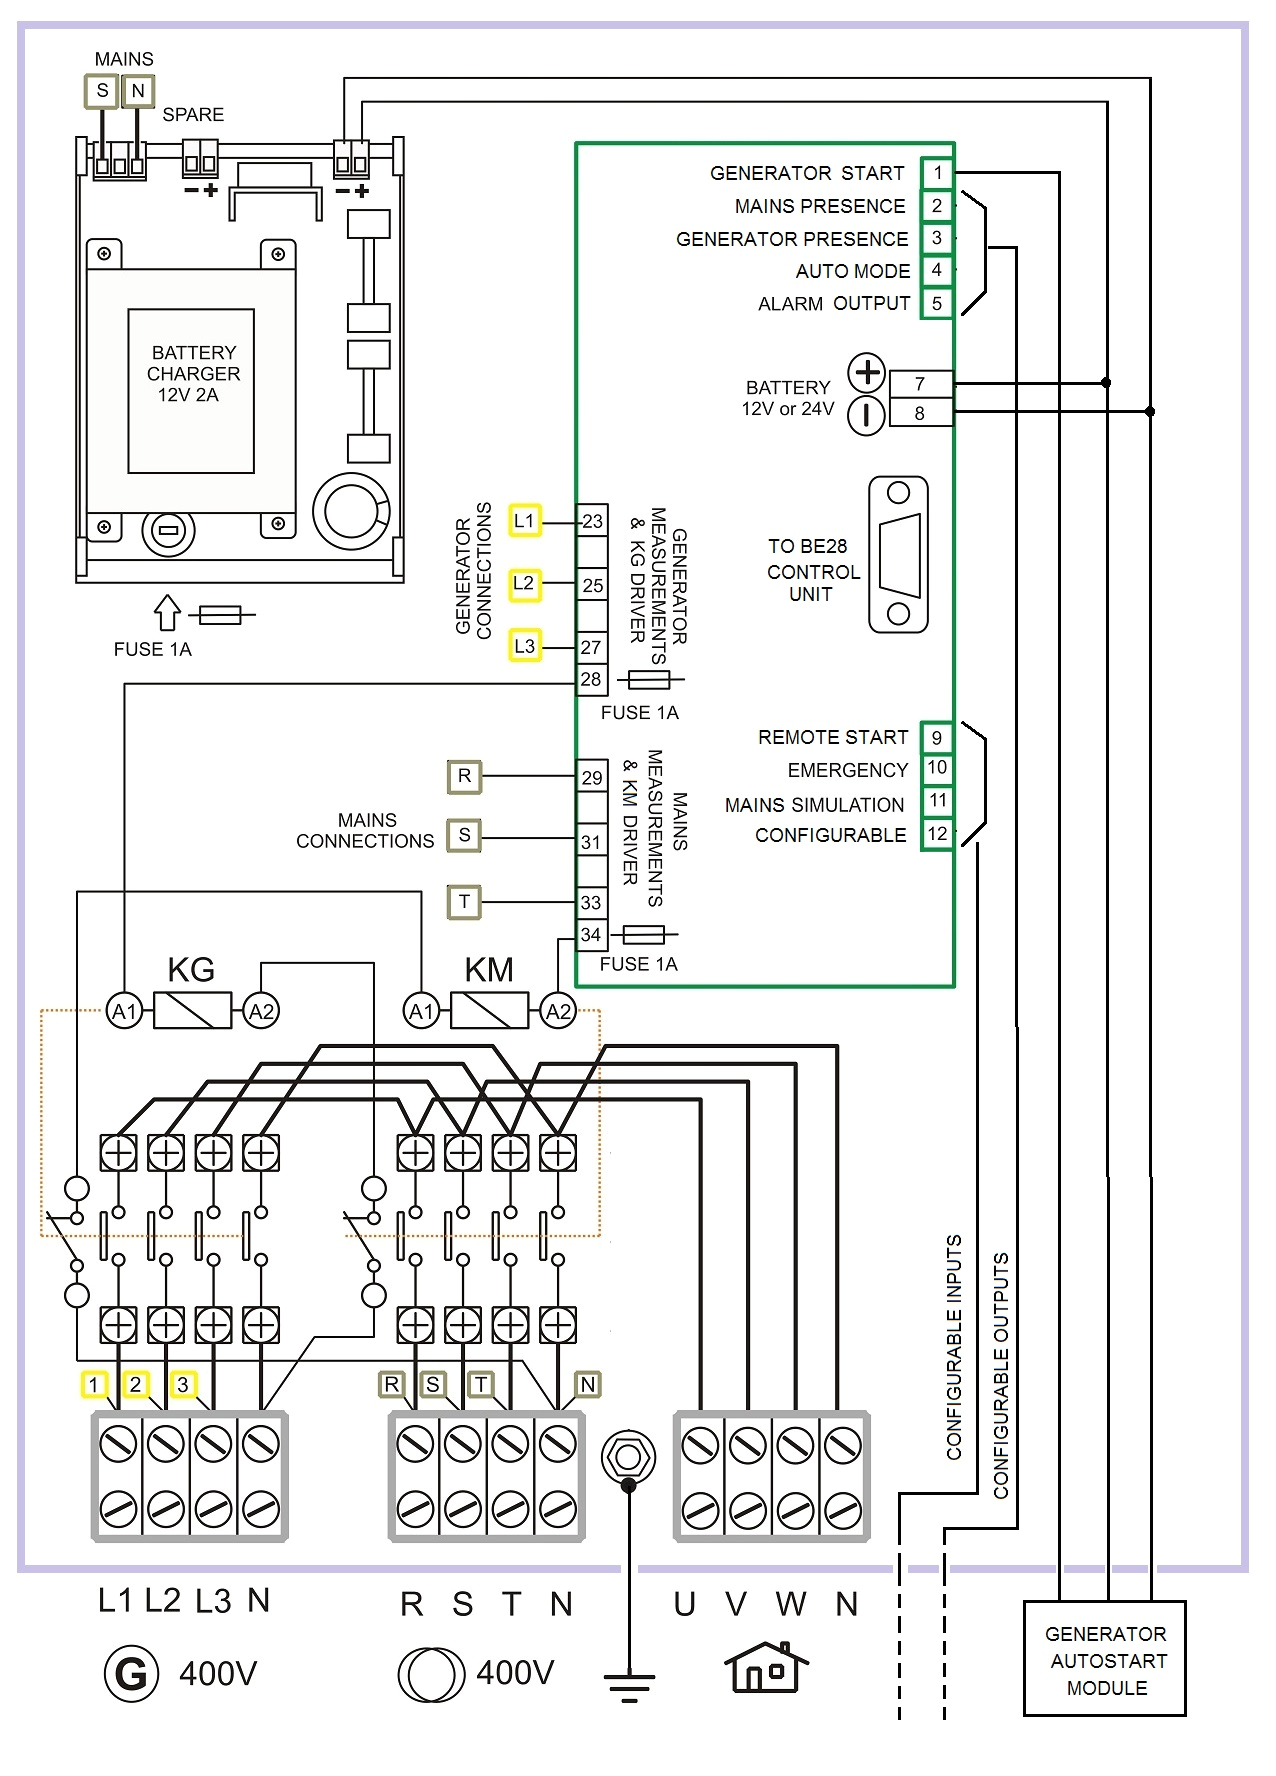 asco ats wiring diagram schema diagram database asco ats wiring diagram